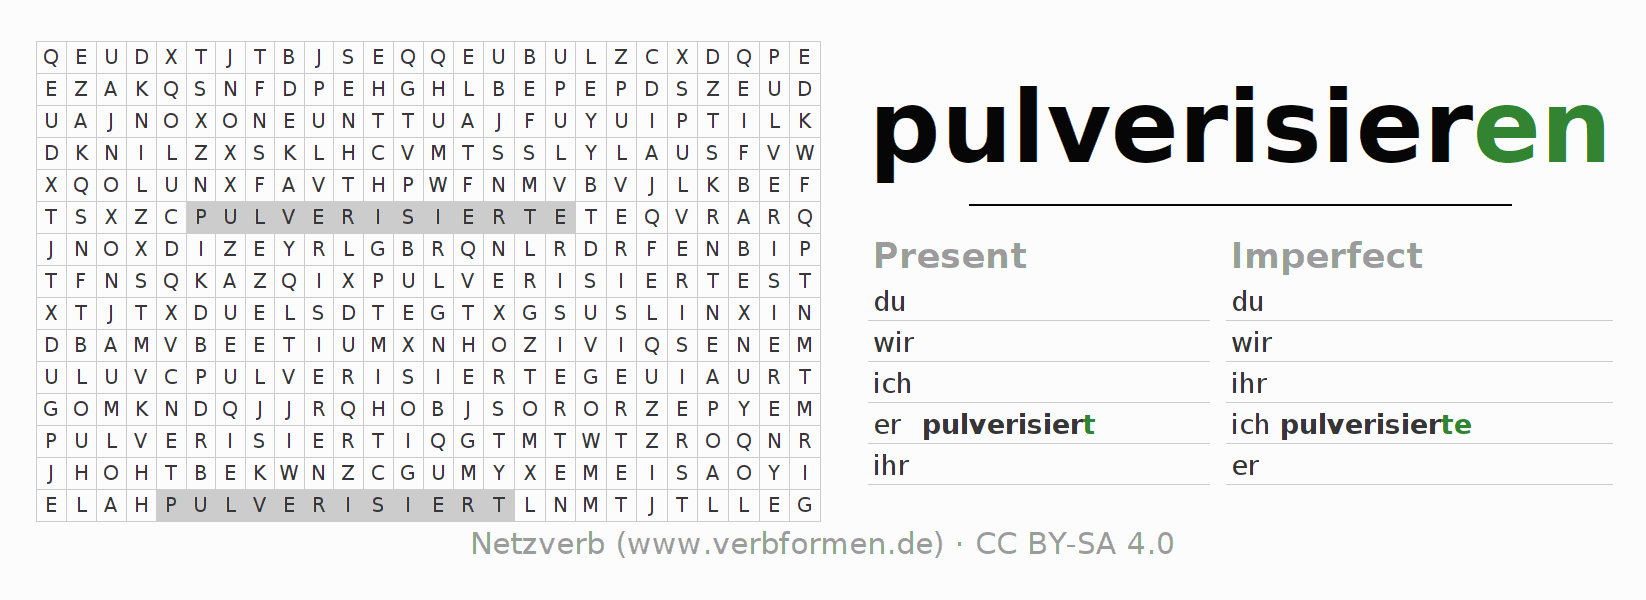 Word search puzzle for the conjugation of the verb pulverisieren